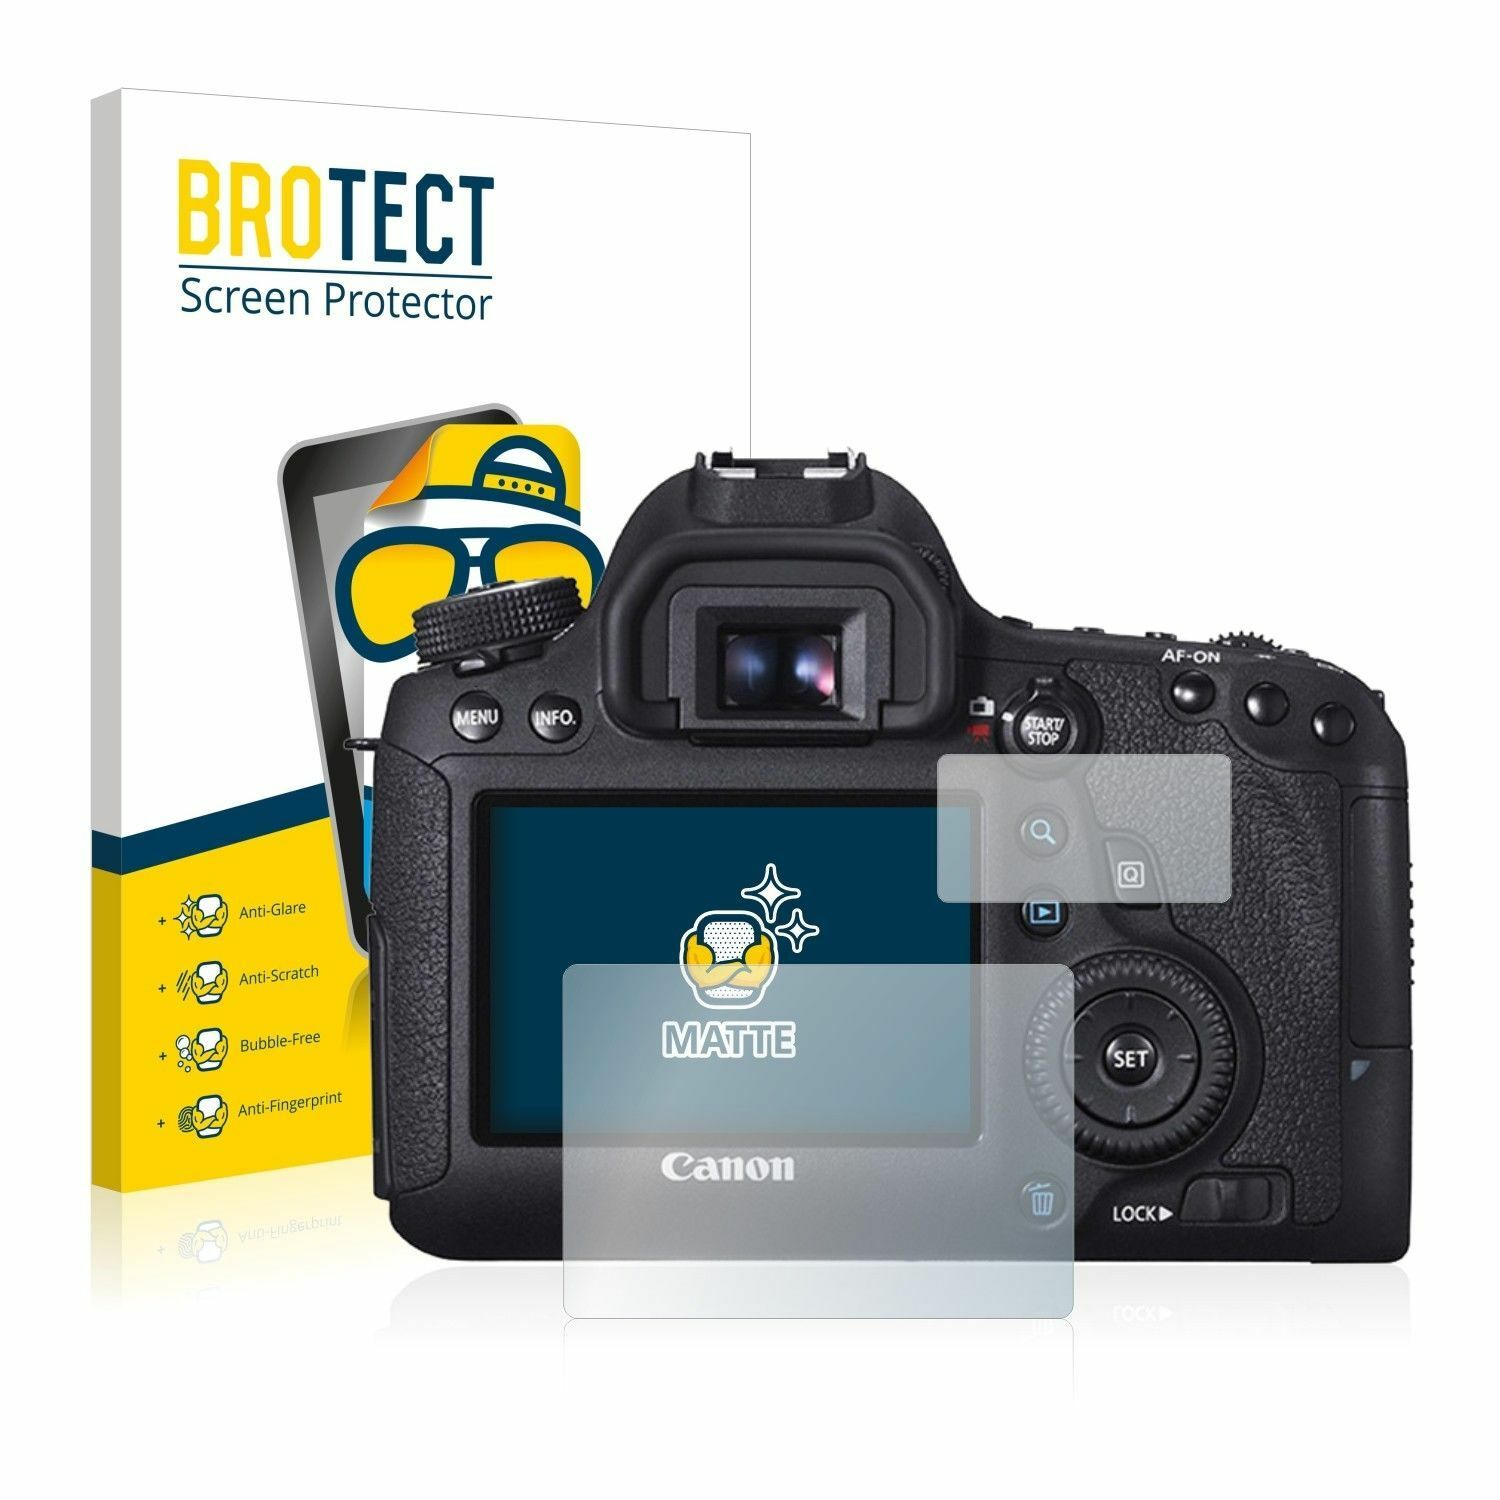 ANTI-GLARE SEMI-MATTE SCREEN PROTECTOR MM 5H CANON EOS 5D MARK 2 II MK2 for2LCDs